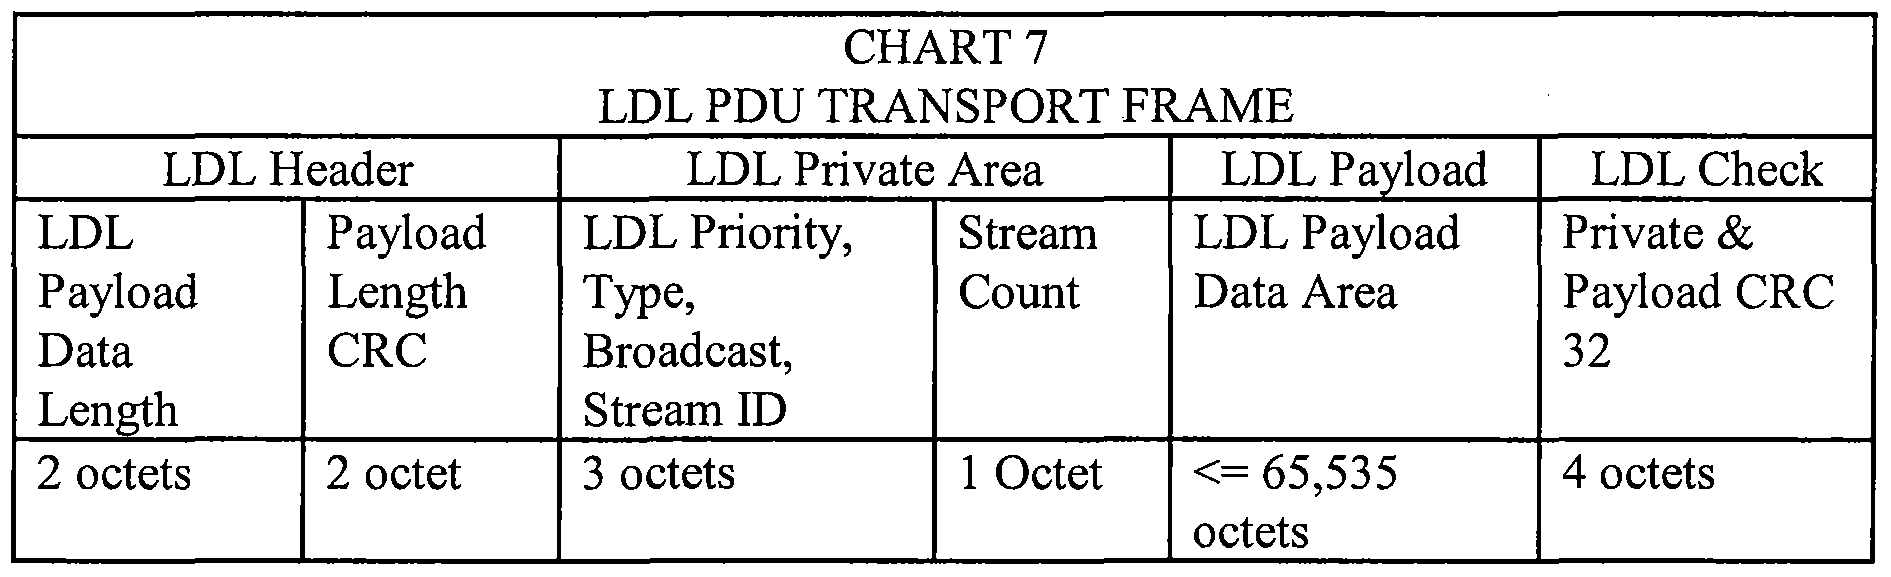 WO2009058149A1 - Improved high bandwidth data transport system